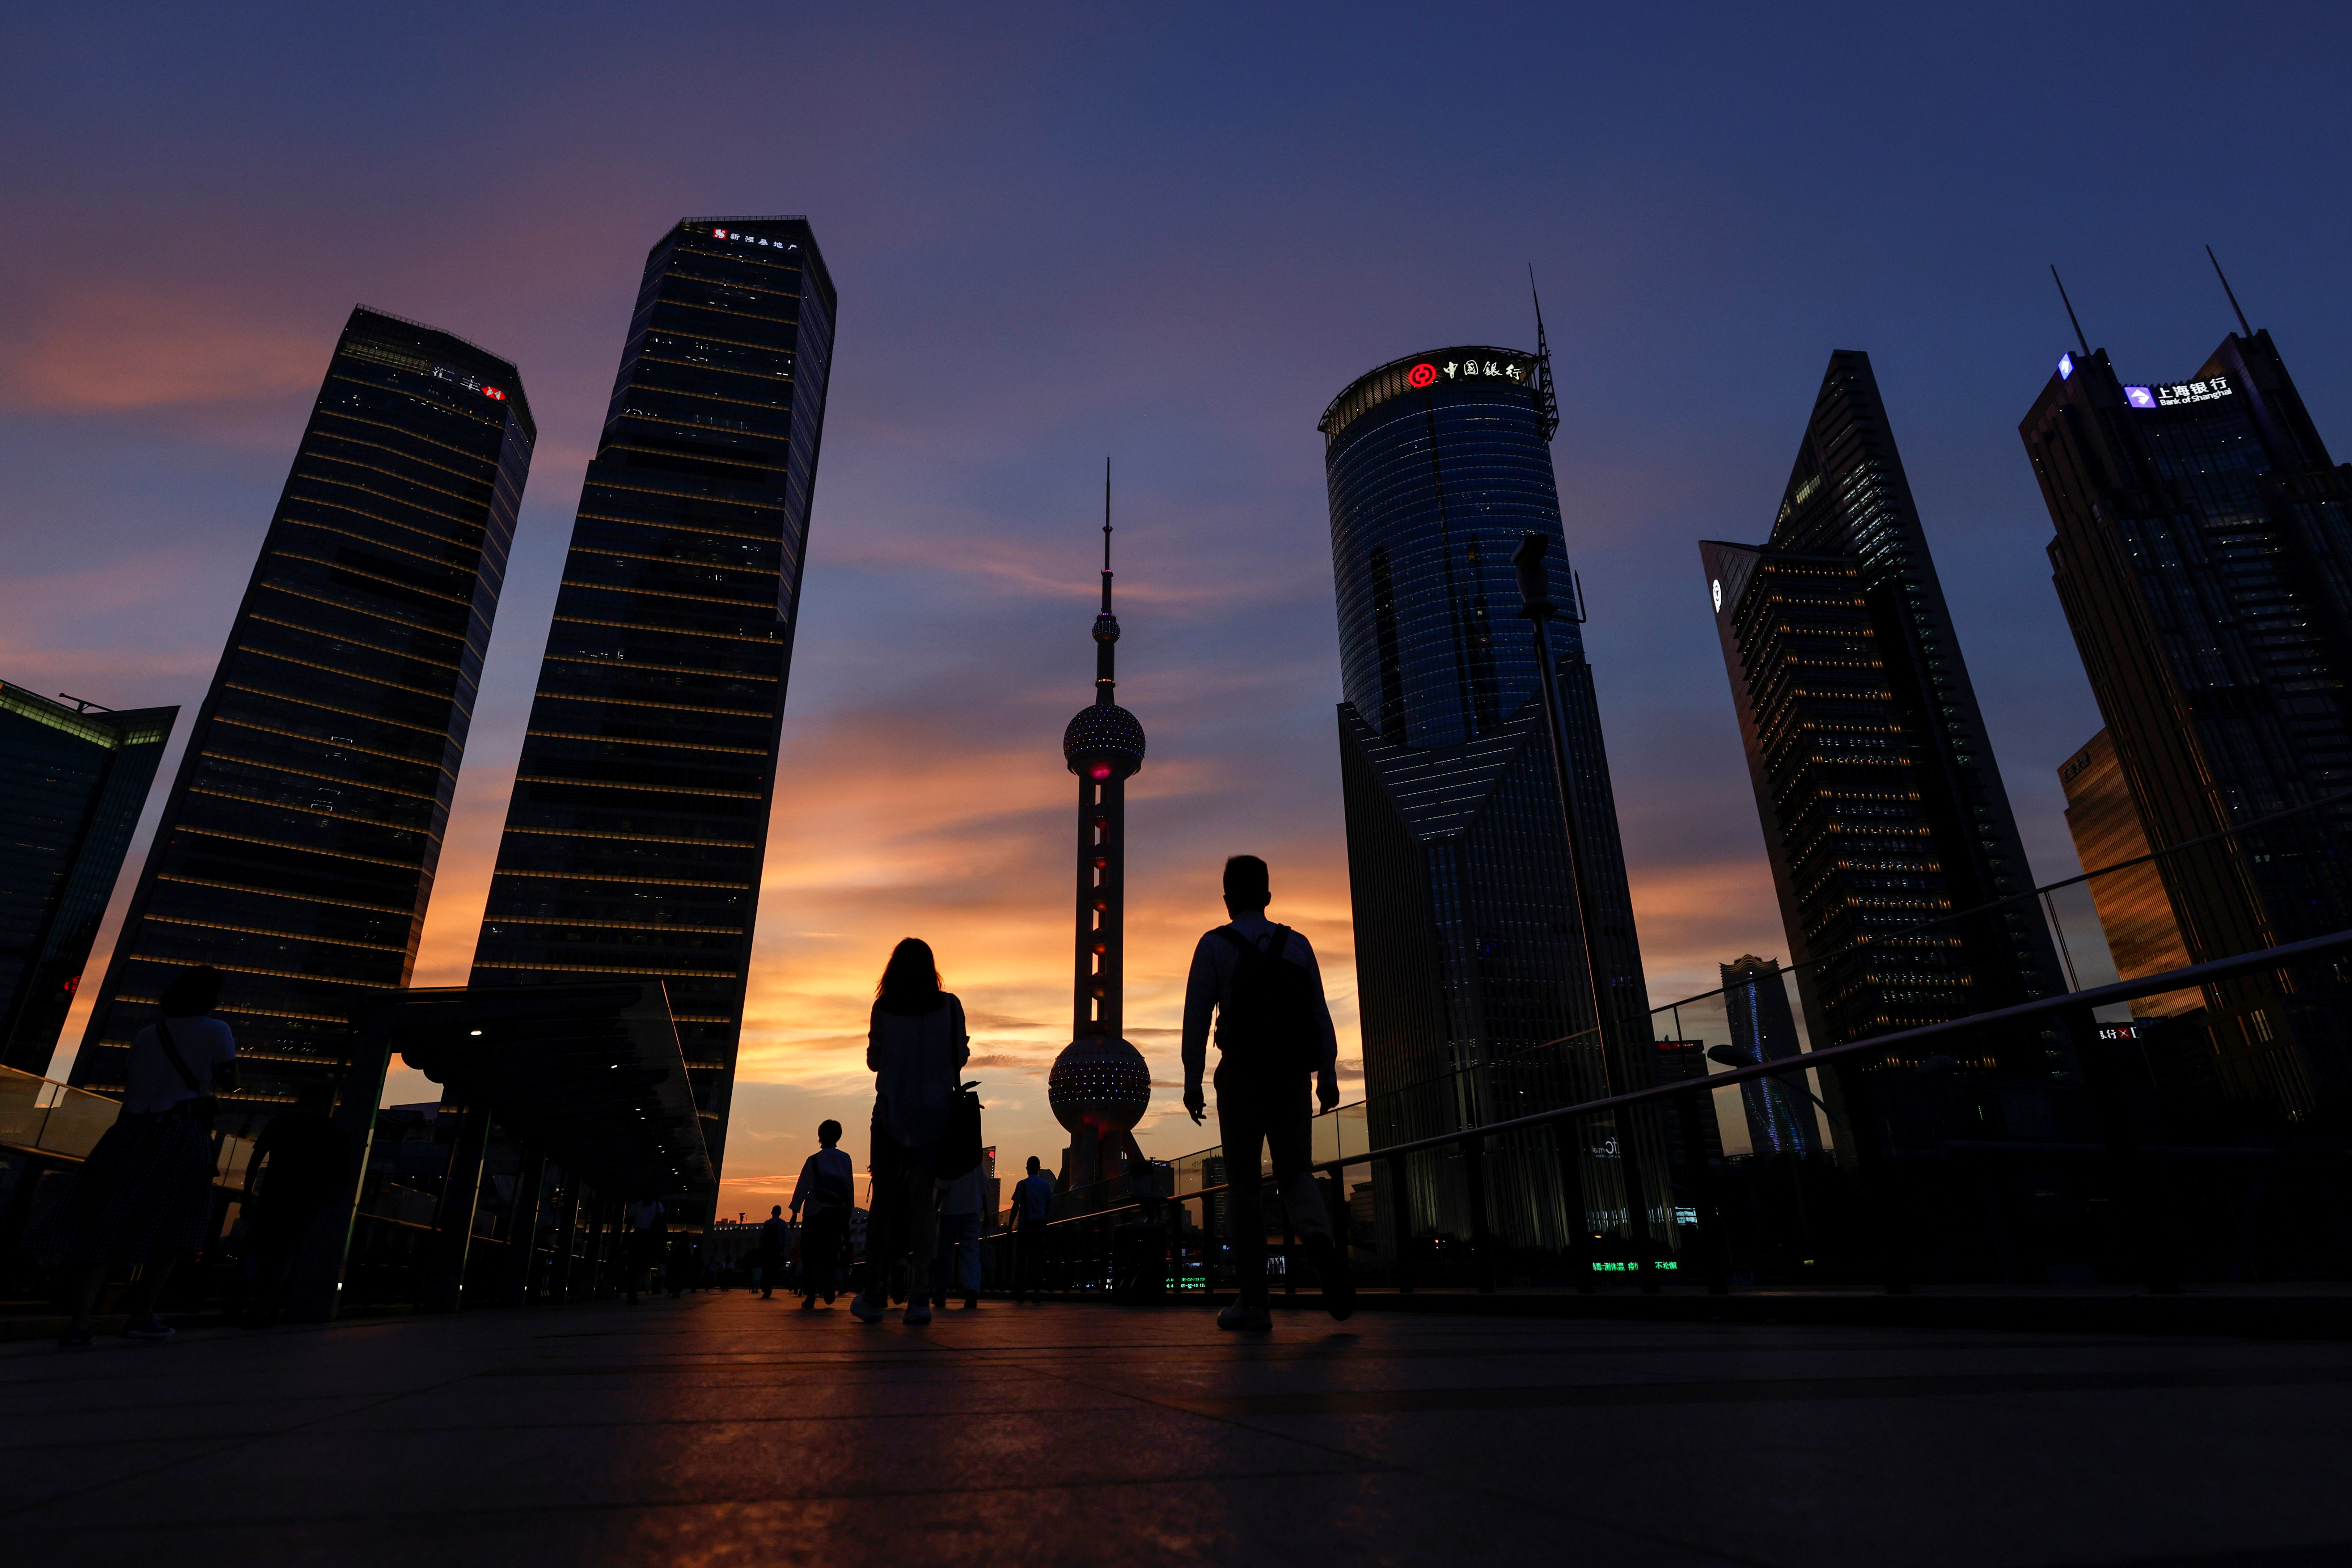 People walk in Lujiazui financial district during sunset in Pudong, Shanghai, China July 13, 2021.   REUTERS/Aly Song